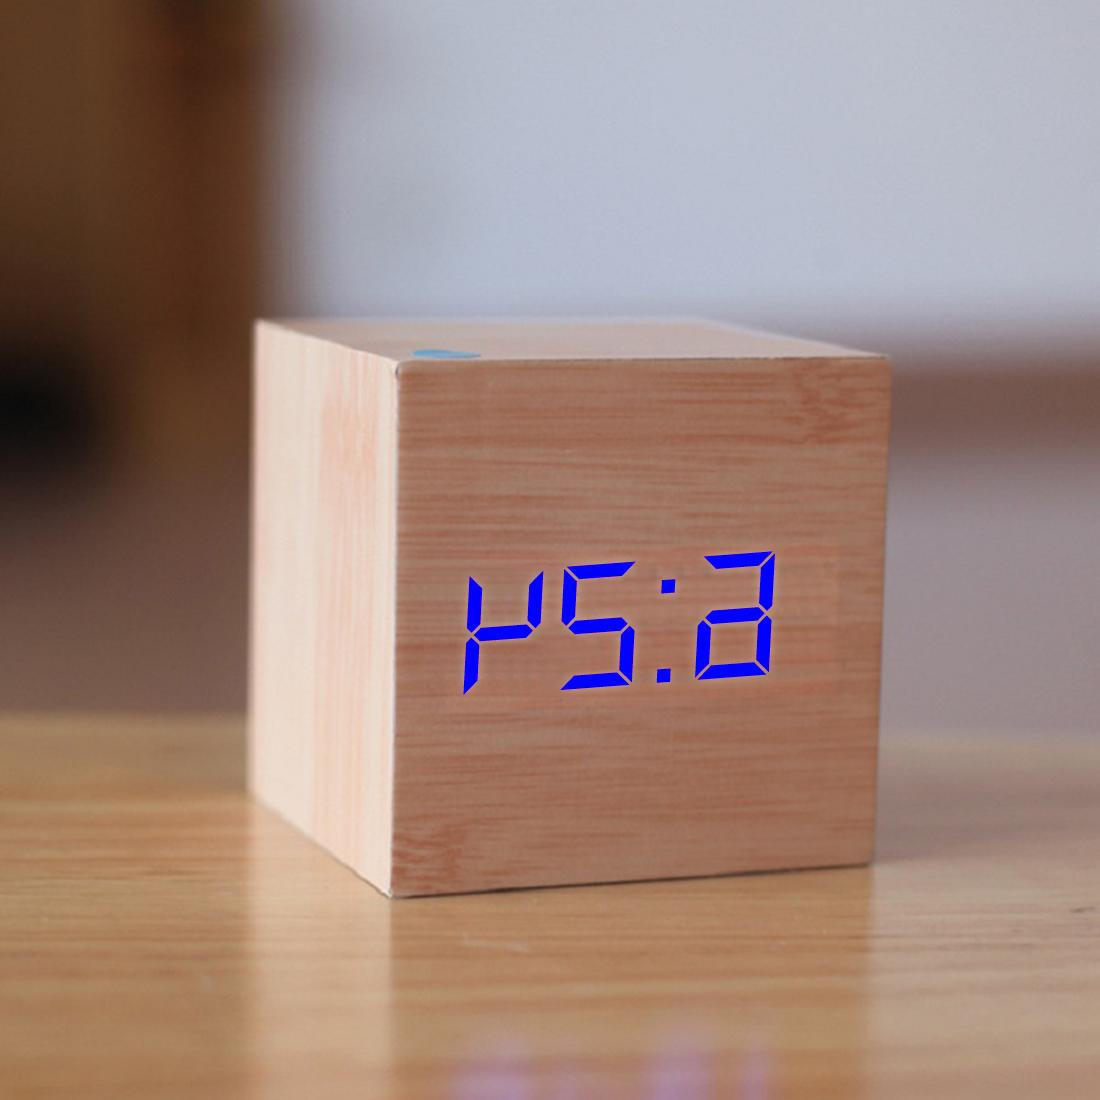 New LED <font><b>Alarm</b></font> <font><b>Clock</b></font> Wood Retro <font><b>Clock</b></font> Table Snooze Function Desk Tools